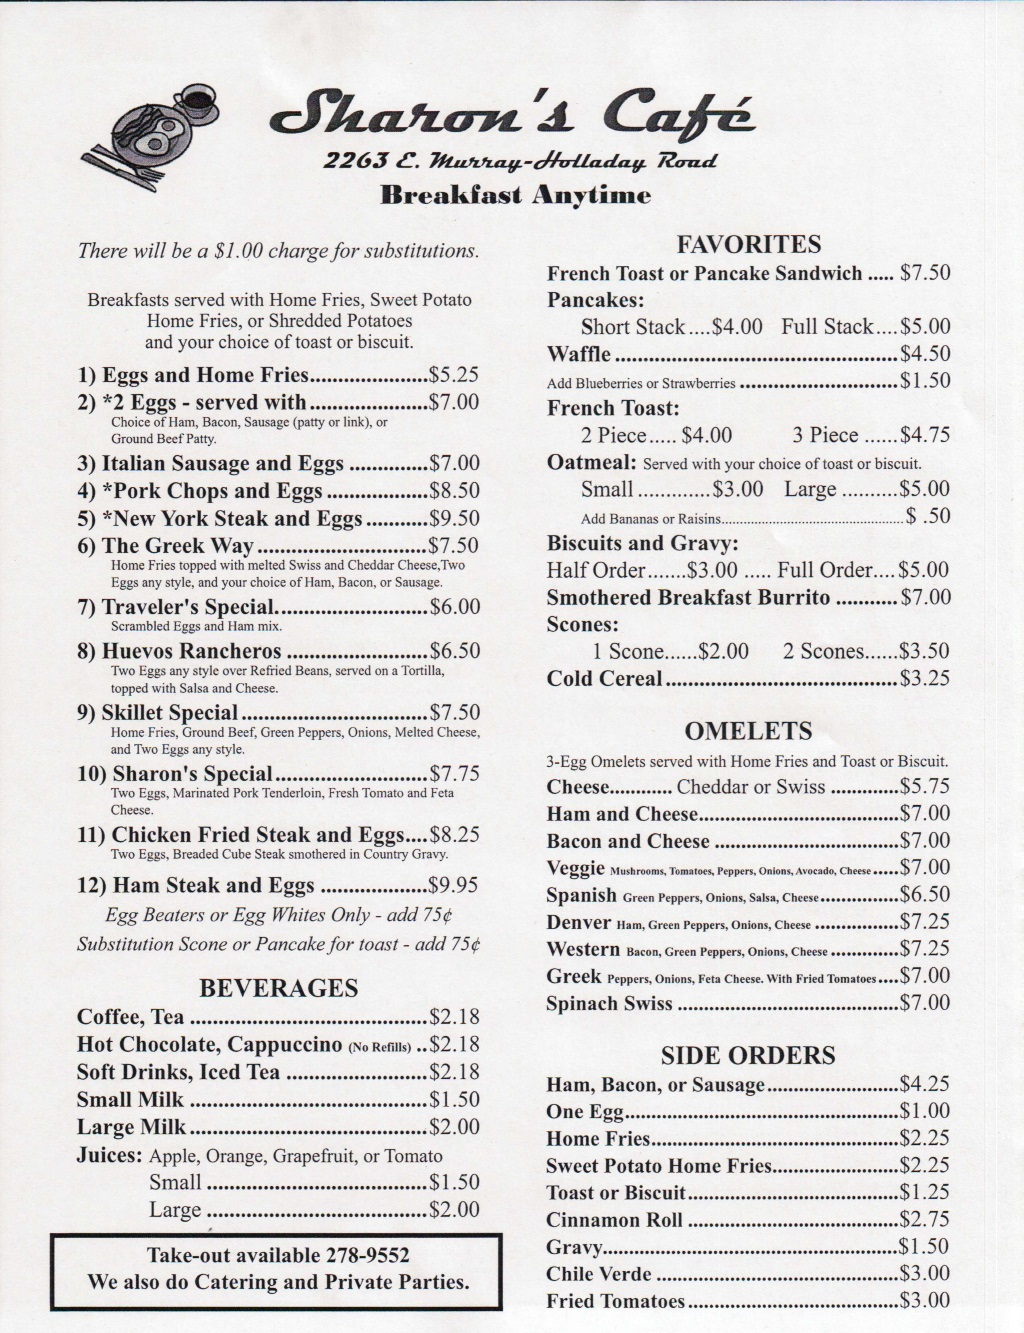 Sharons Cafe Menu 1